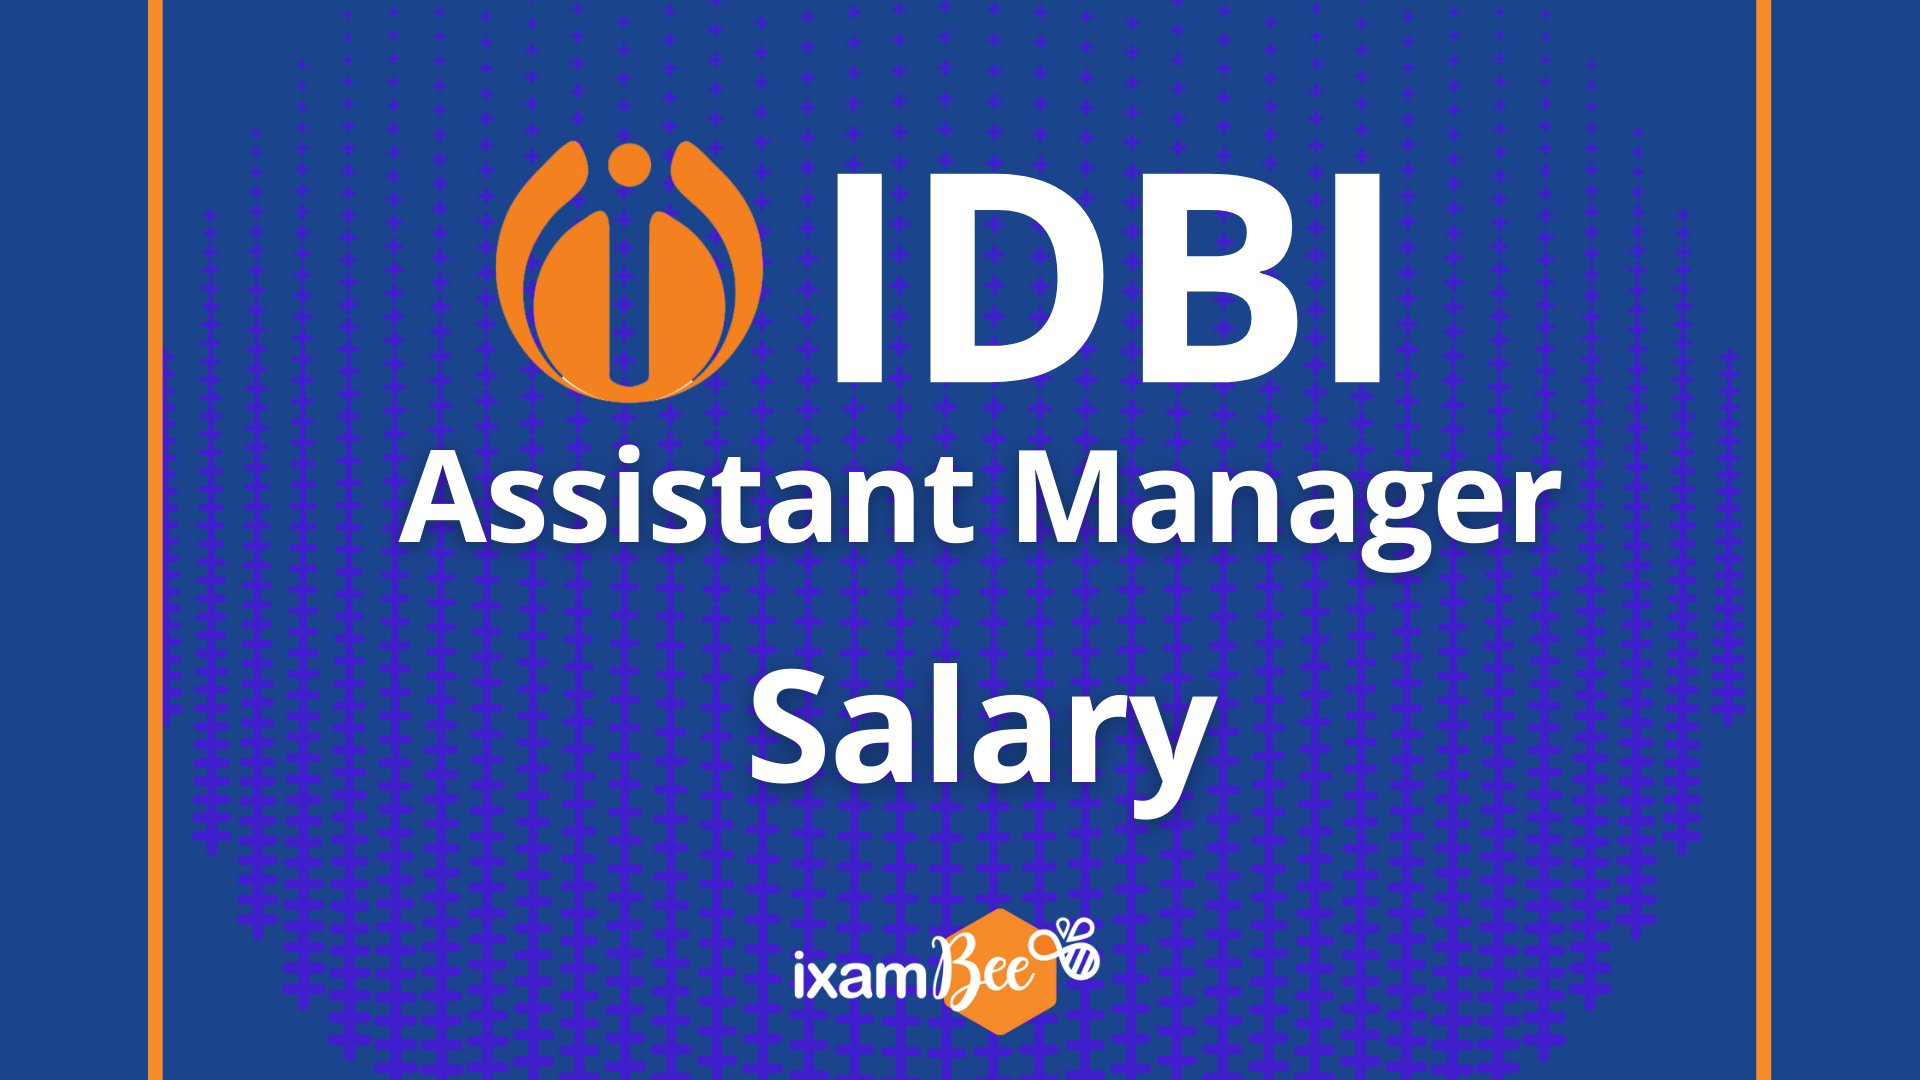 IDBI Assistant Manager Salary